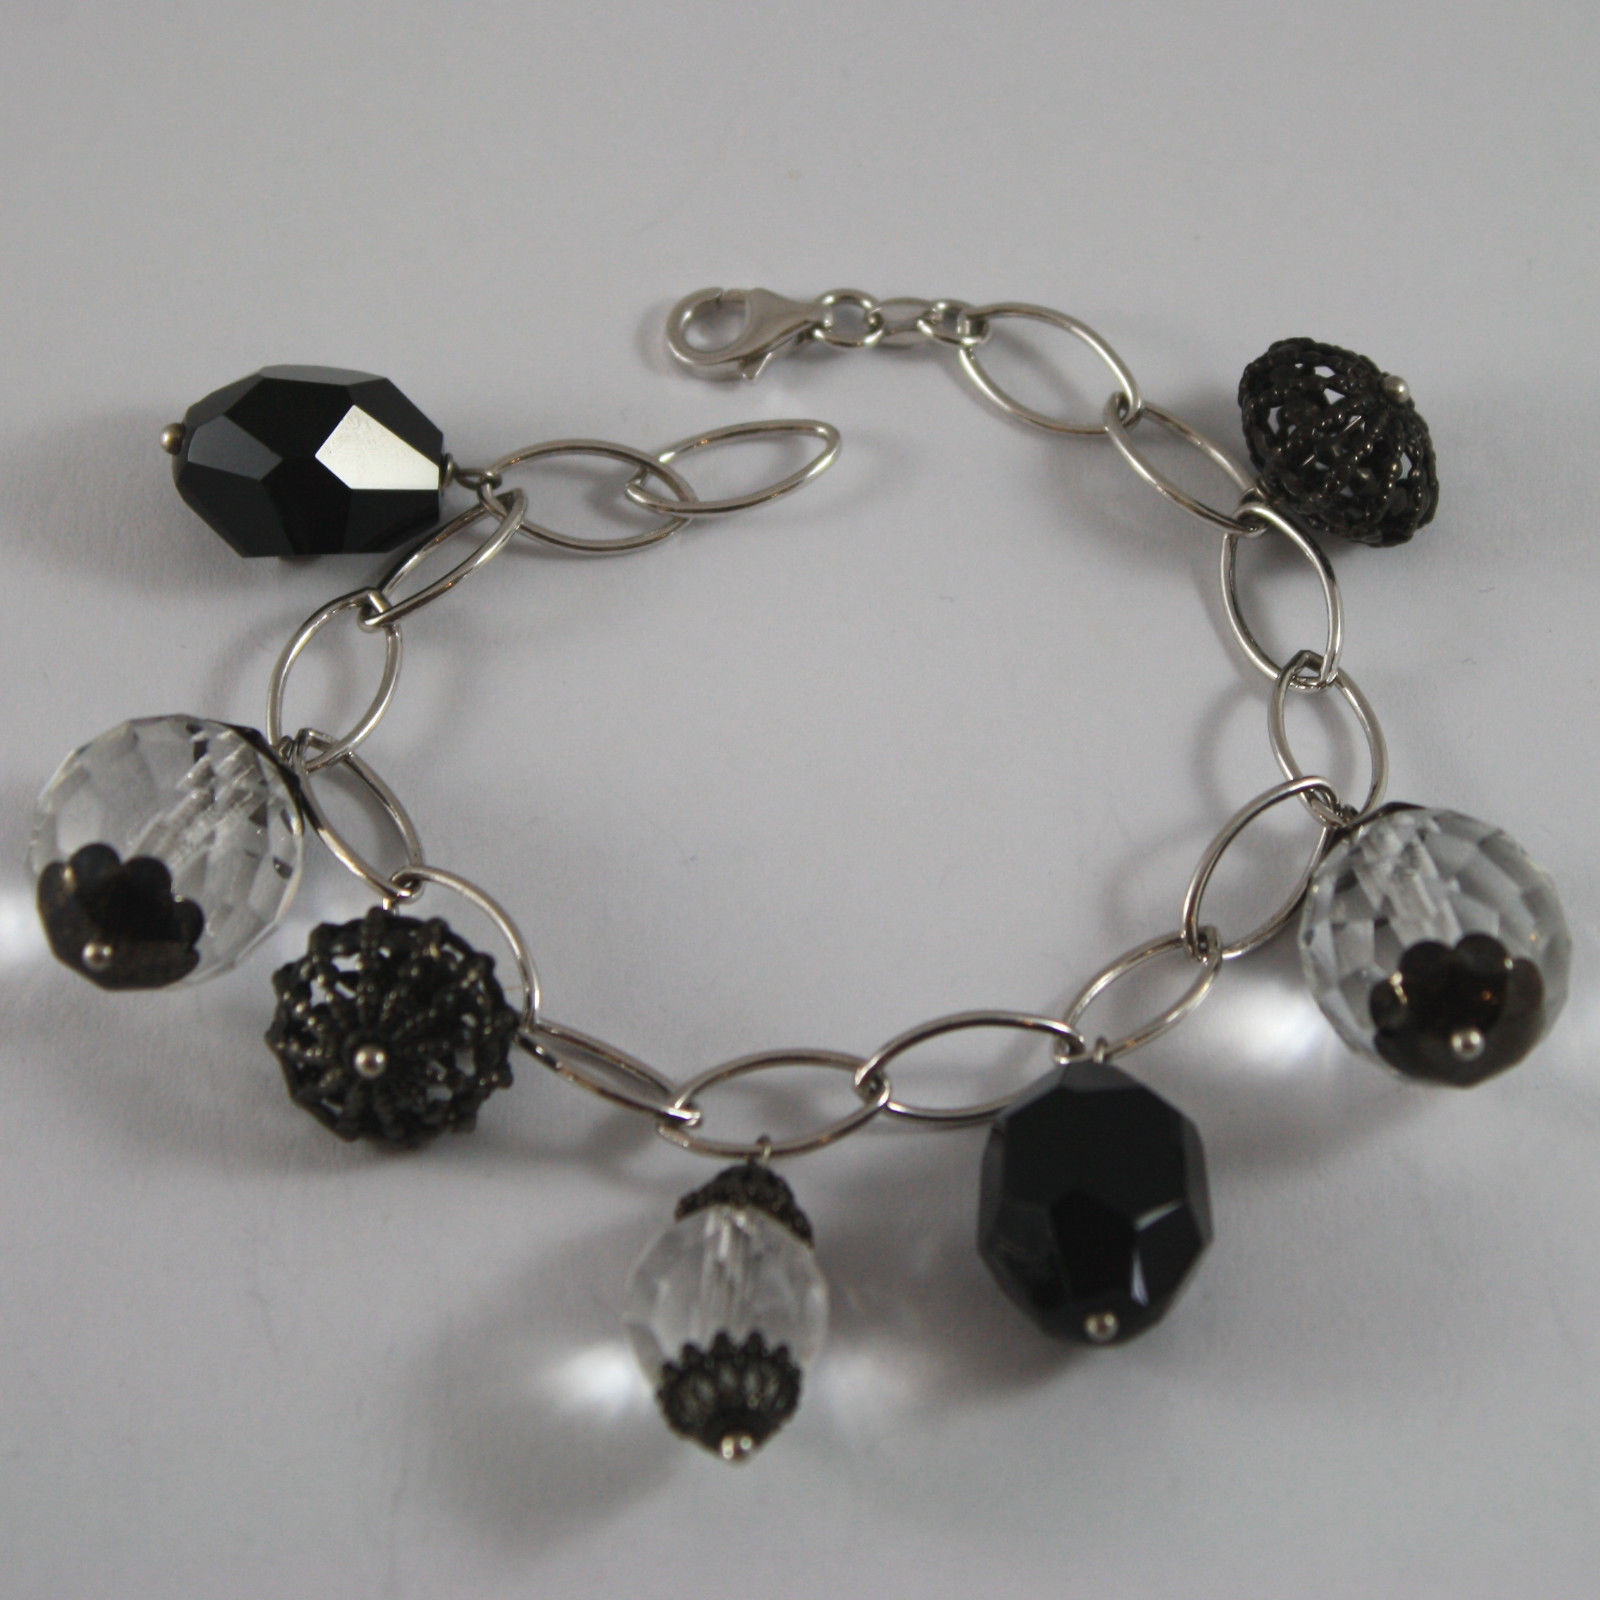 .925 RHODIUM SILVER BRACELET WITH BLACK ONYX, TRANSPARENT CRYSTALS AND CHARMS